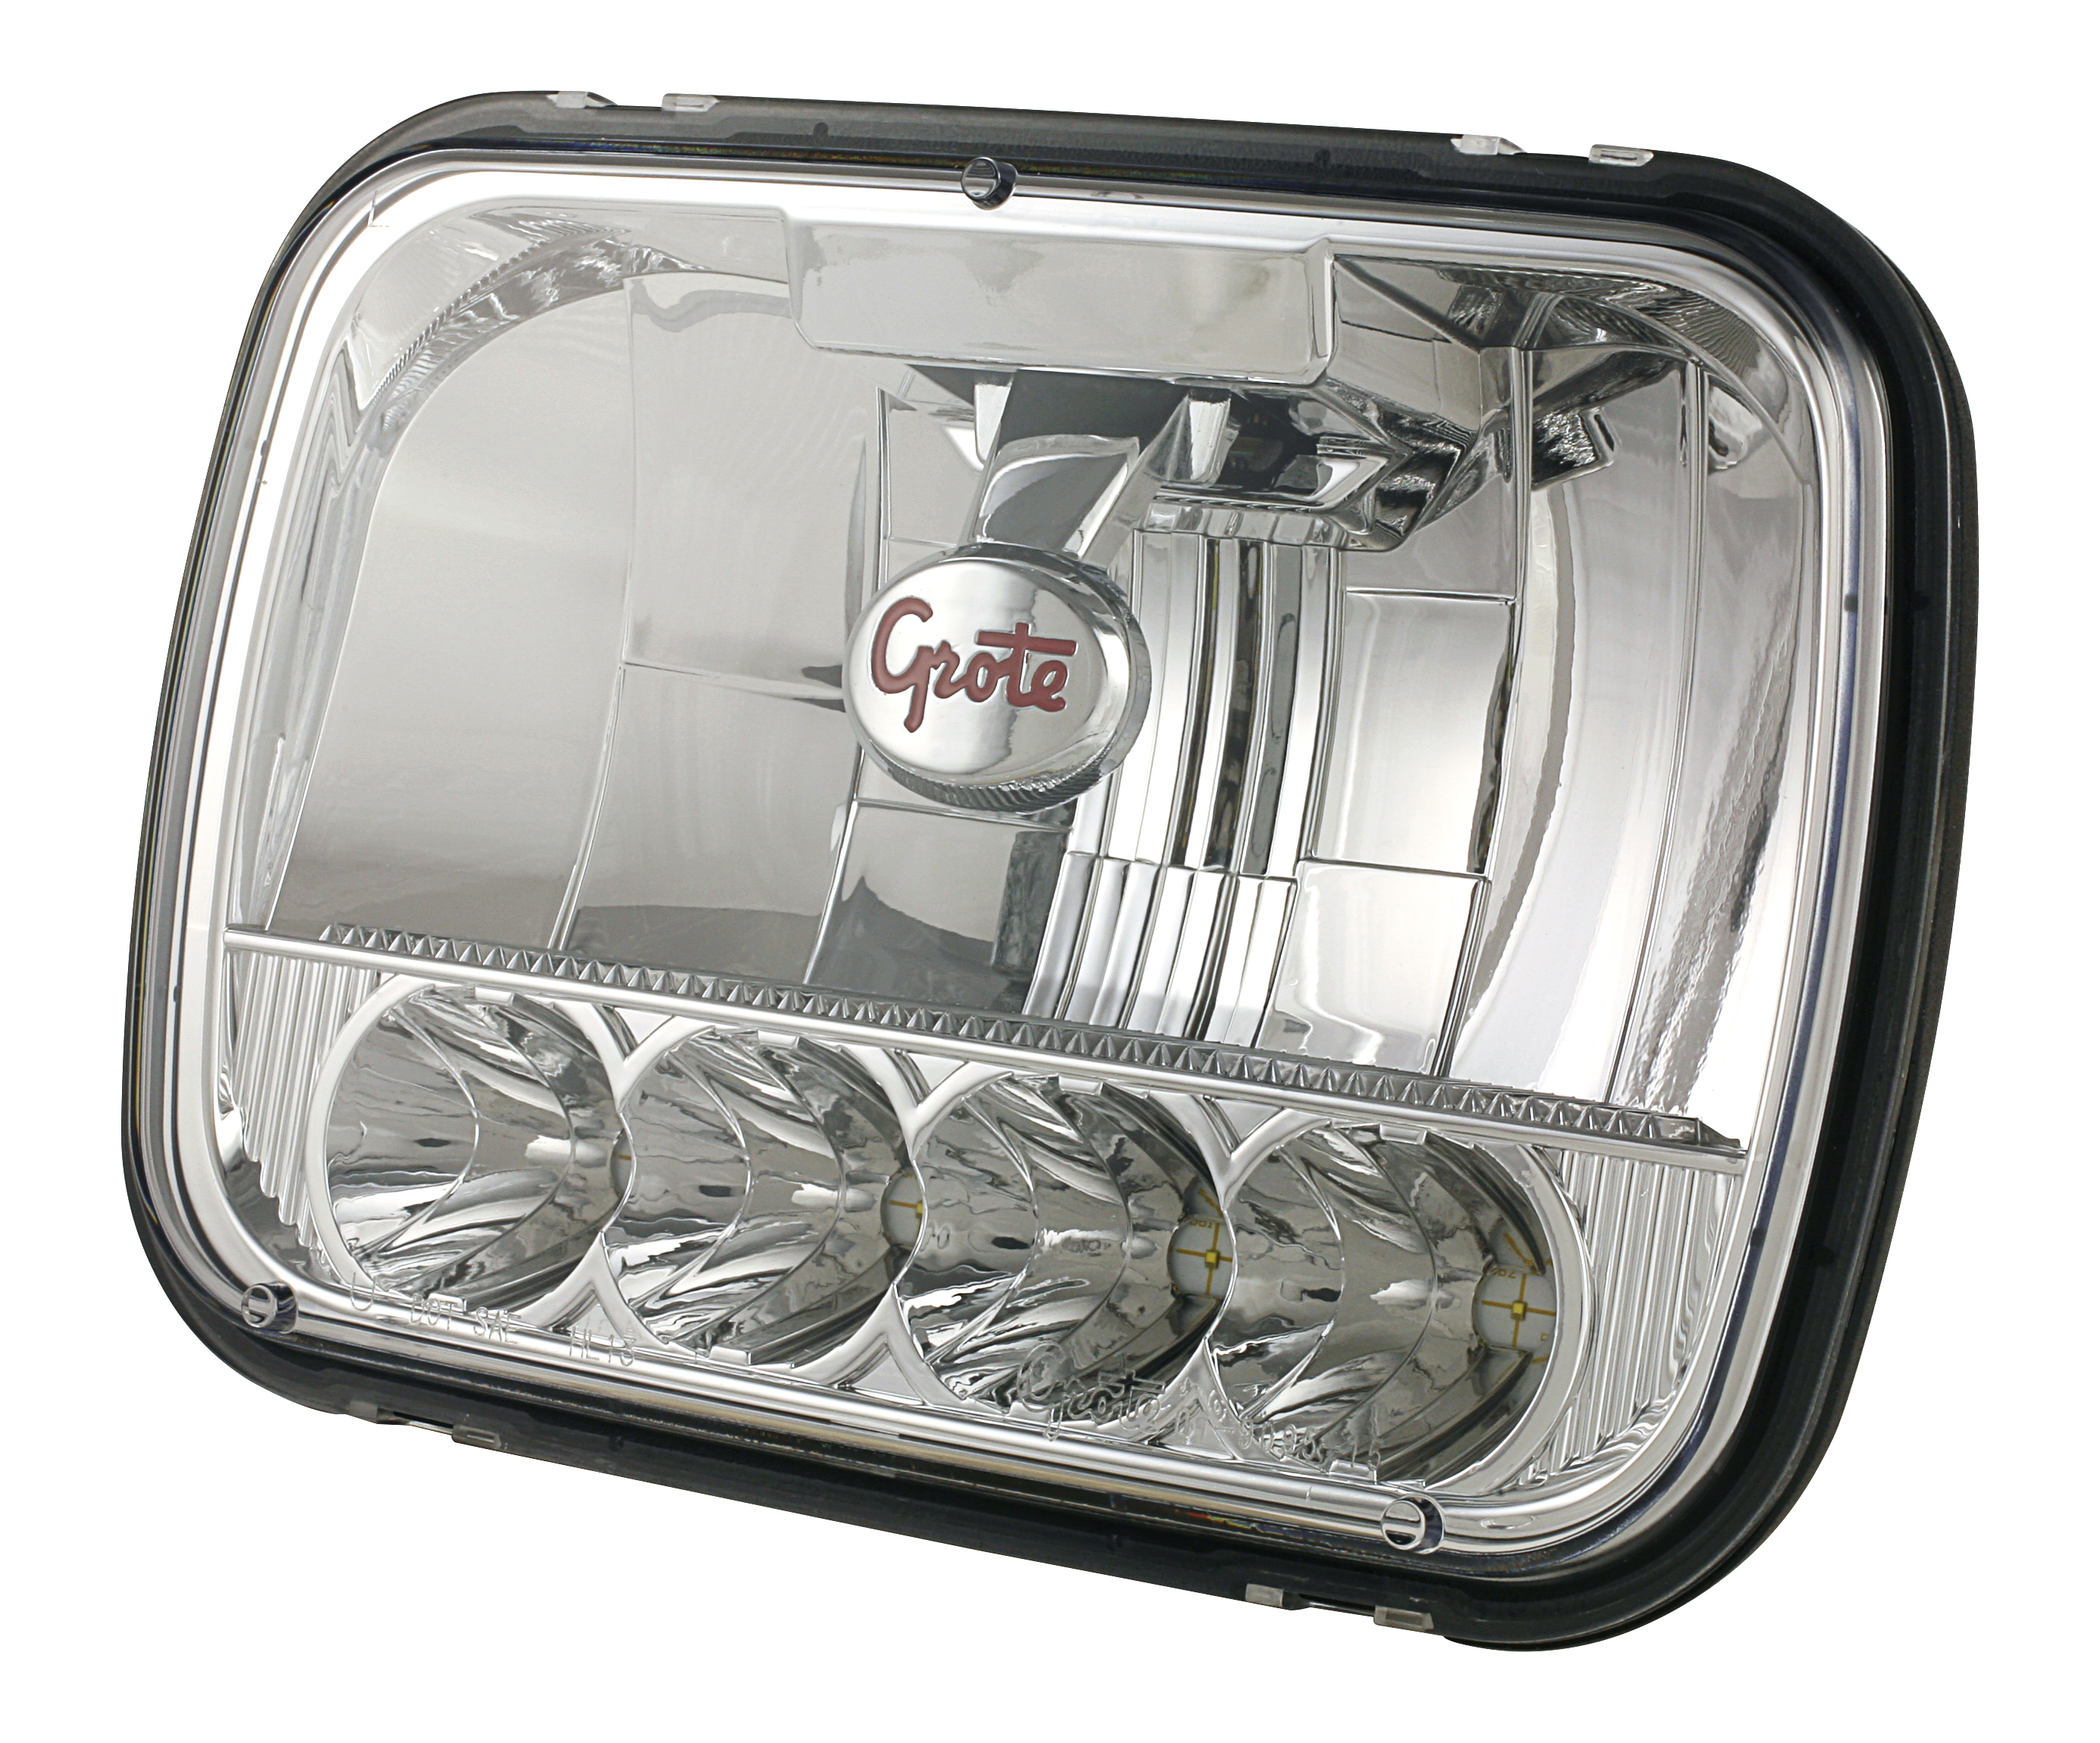 90941 5 Grote 7 Quot Led Headlight